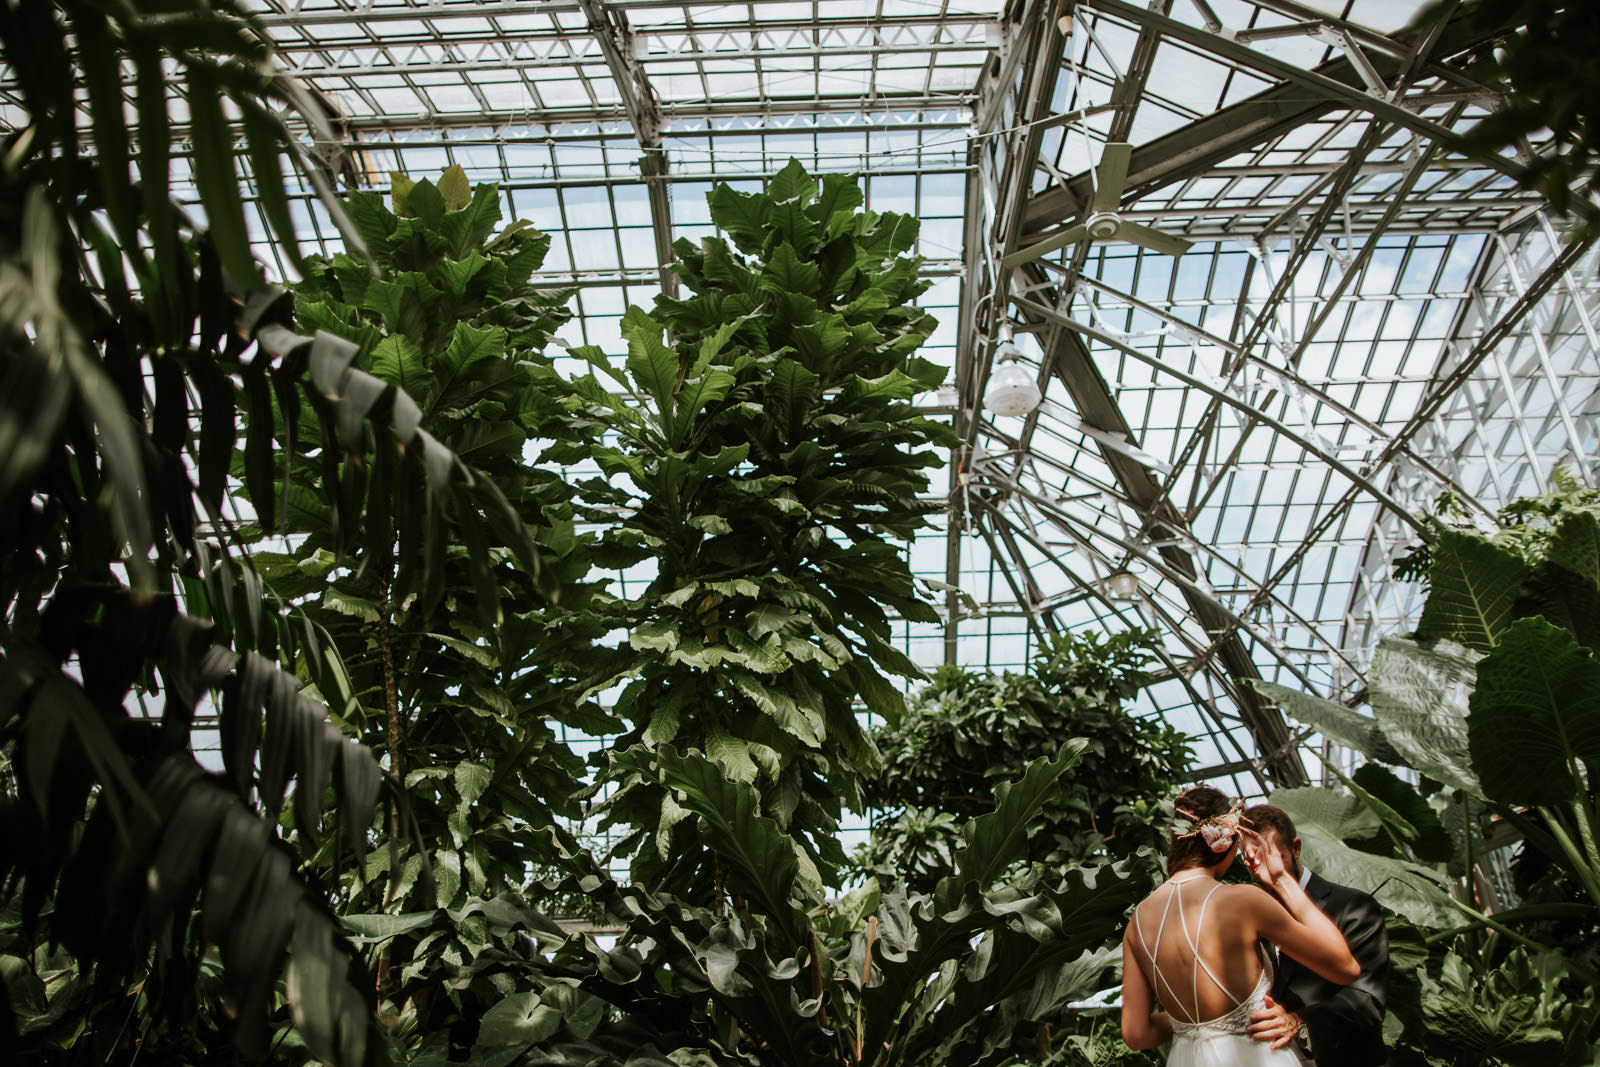 First Look Photos Garfield park Conservatory